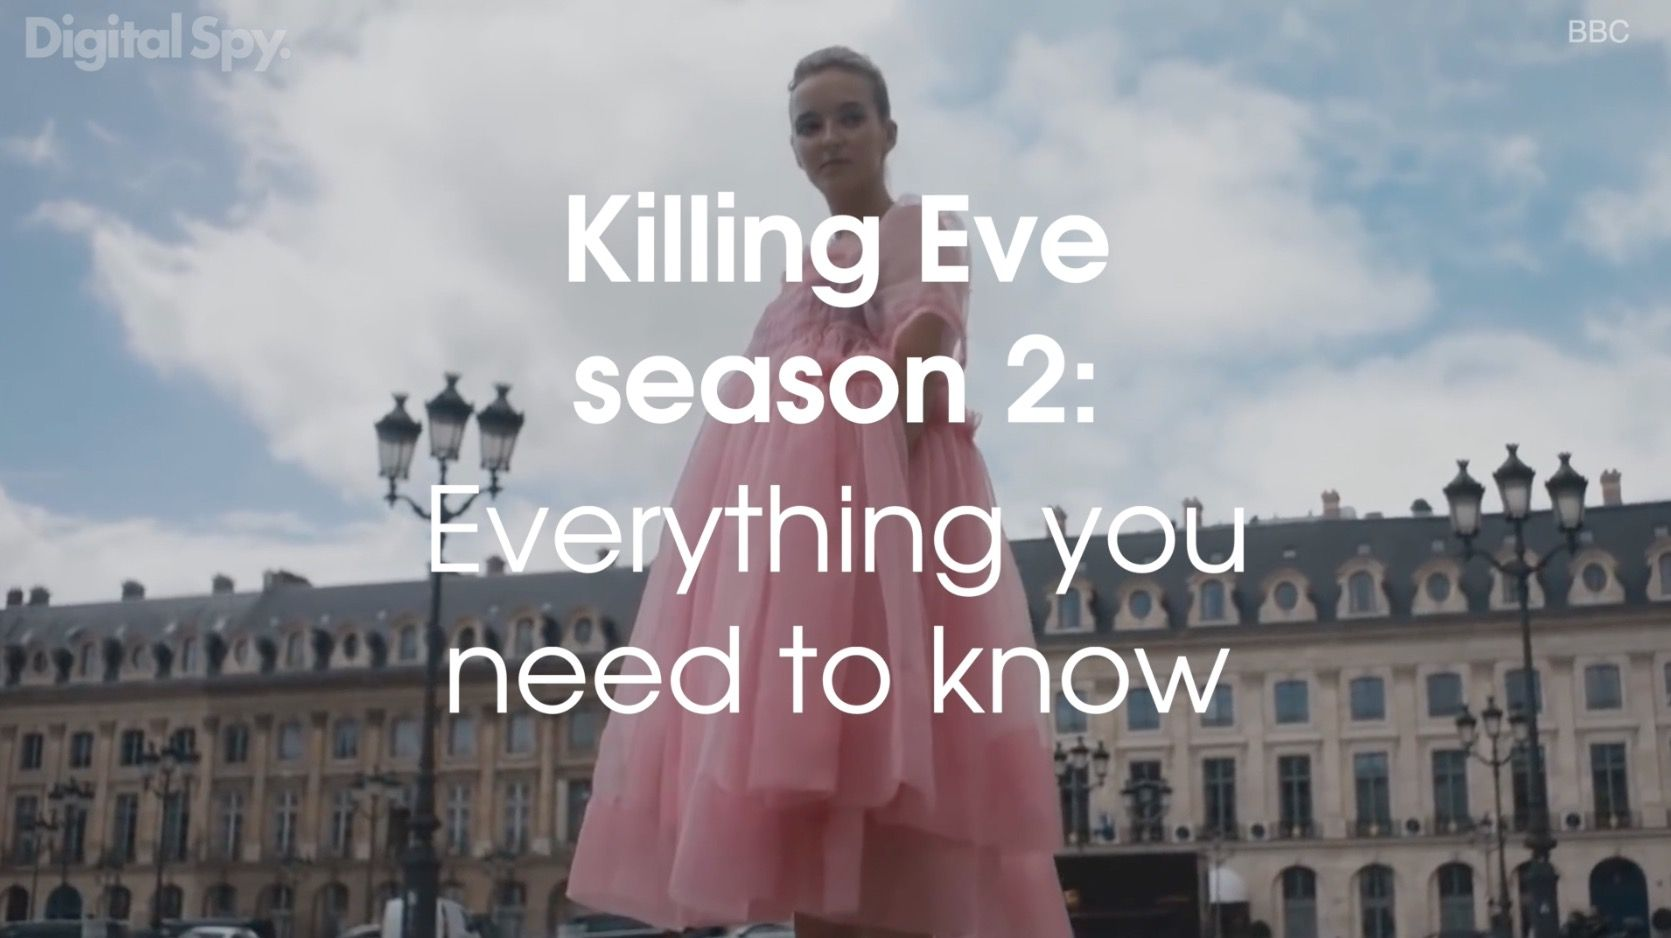 Killing Eve season 2: Air date, cast and everything you need to know